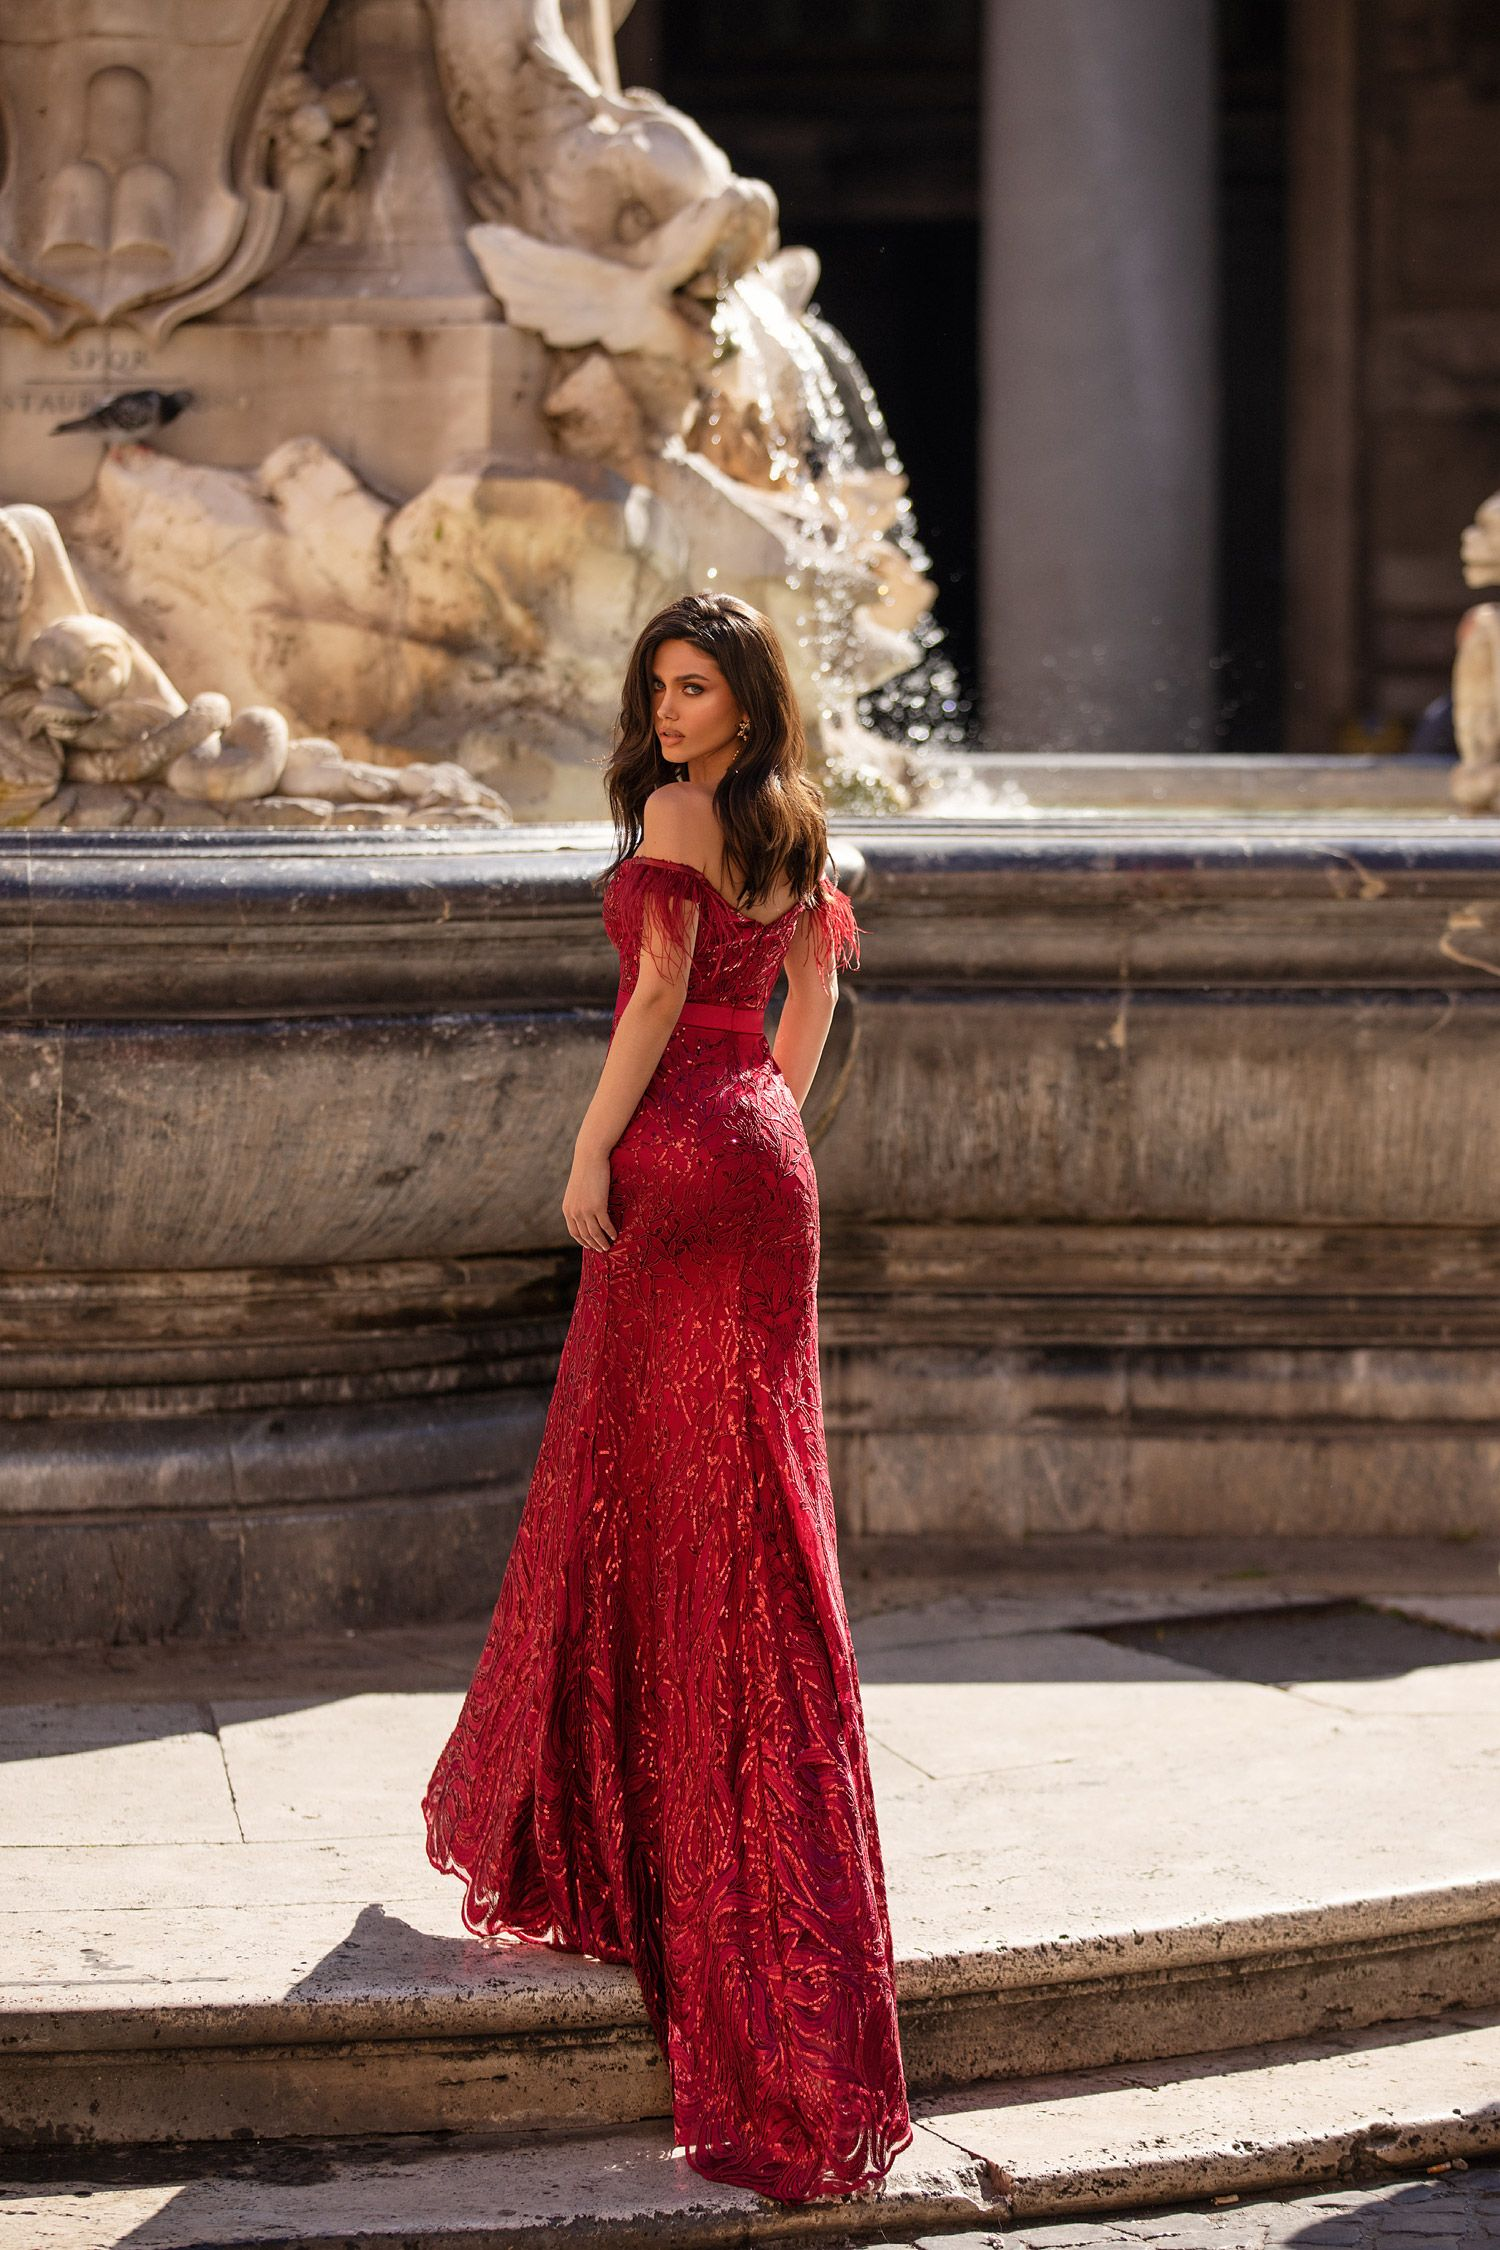 Natale Wine Red In 2020 Night Dress For Women Sweet 16 Dresses Fashion